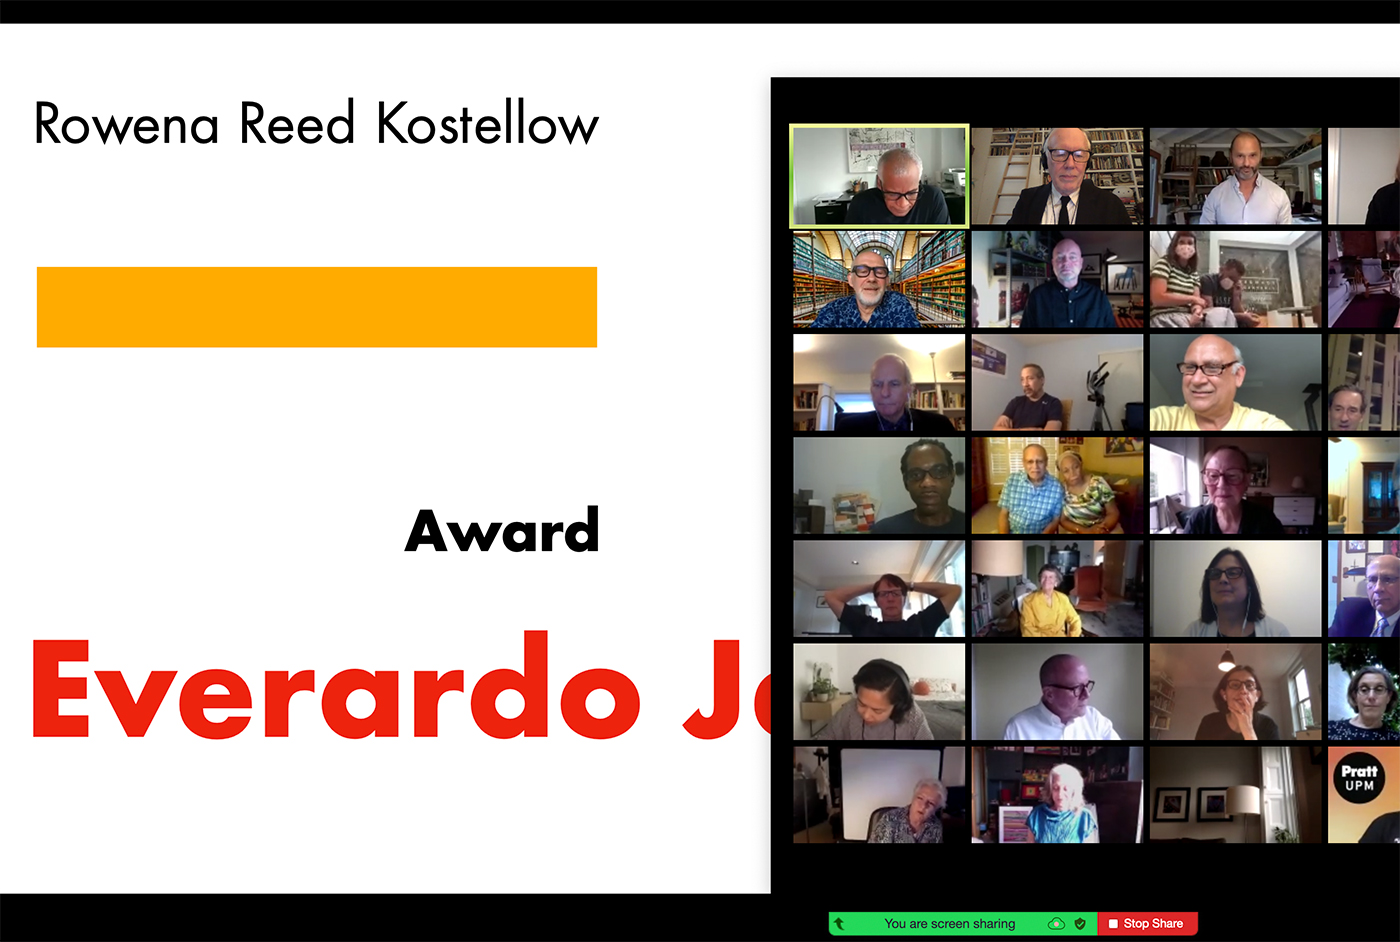 The virtual 2020 Rowena Reed Kostellow Awards